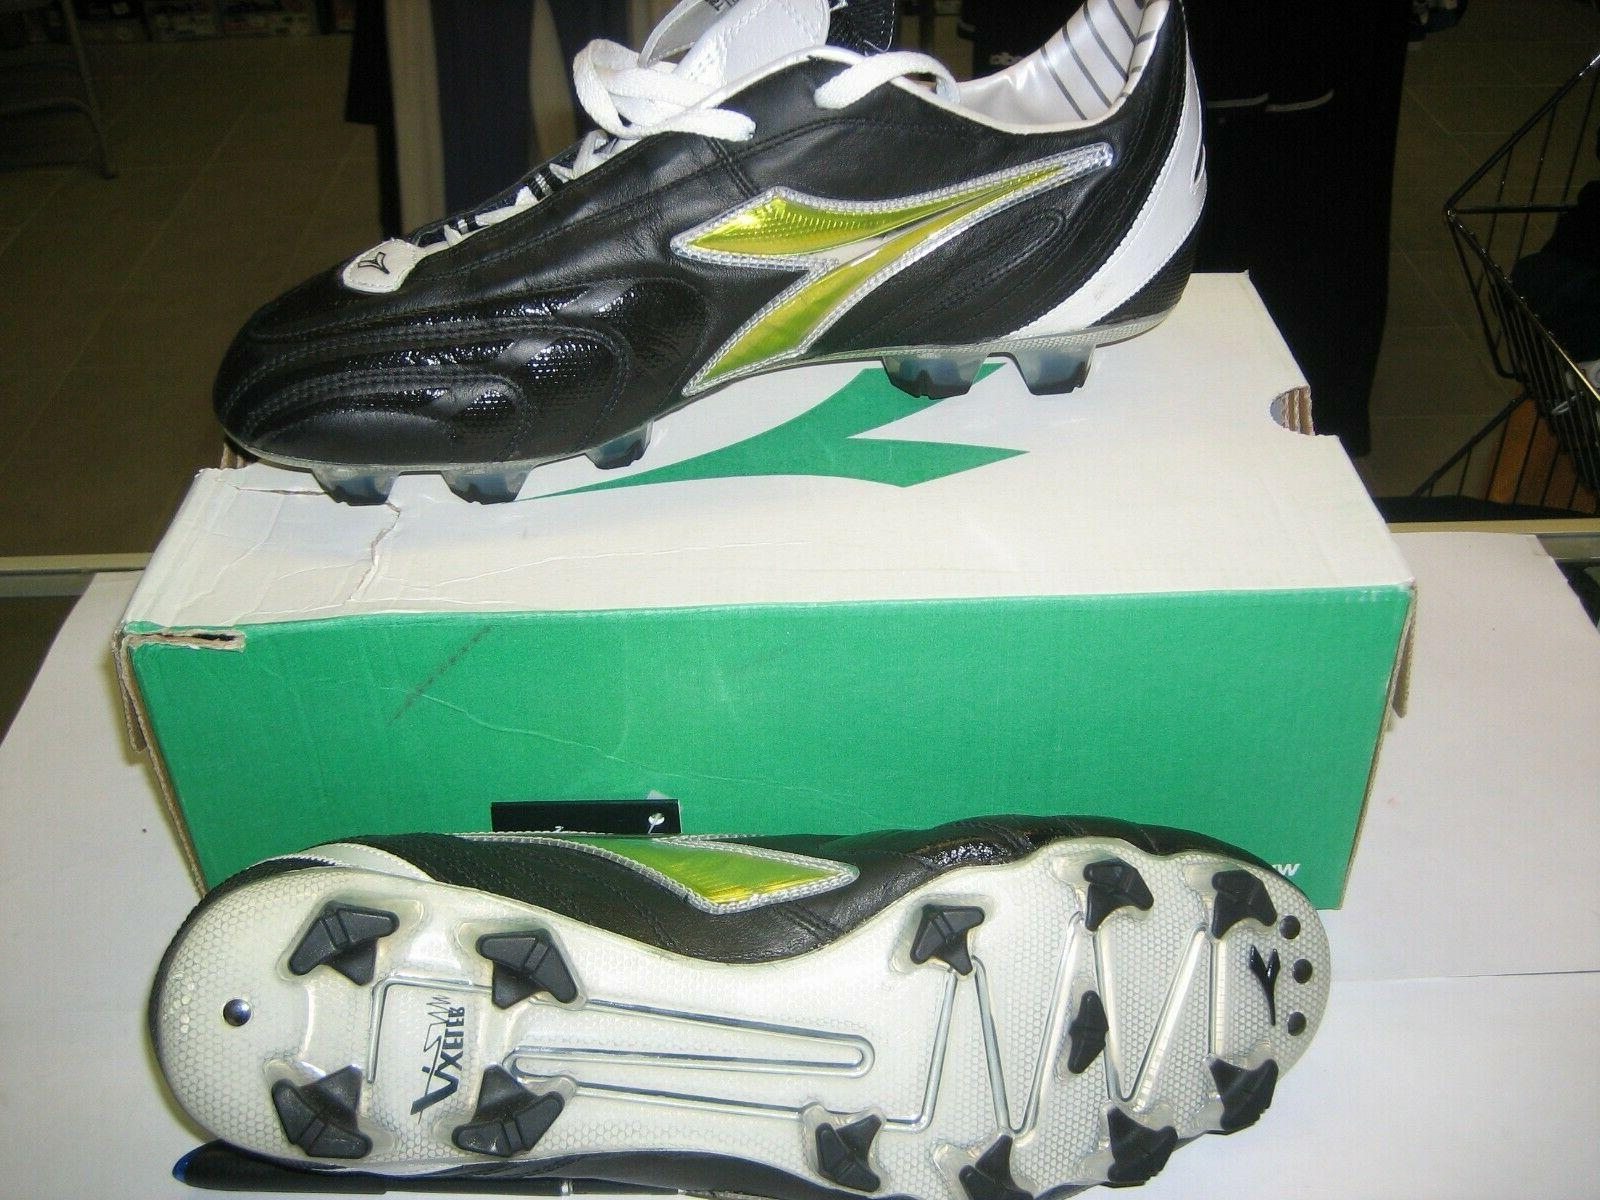 attiva rtx 12 soccer cleat k leather